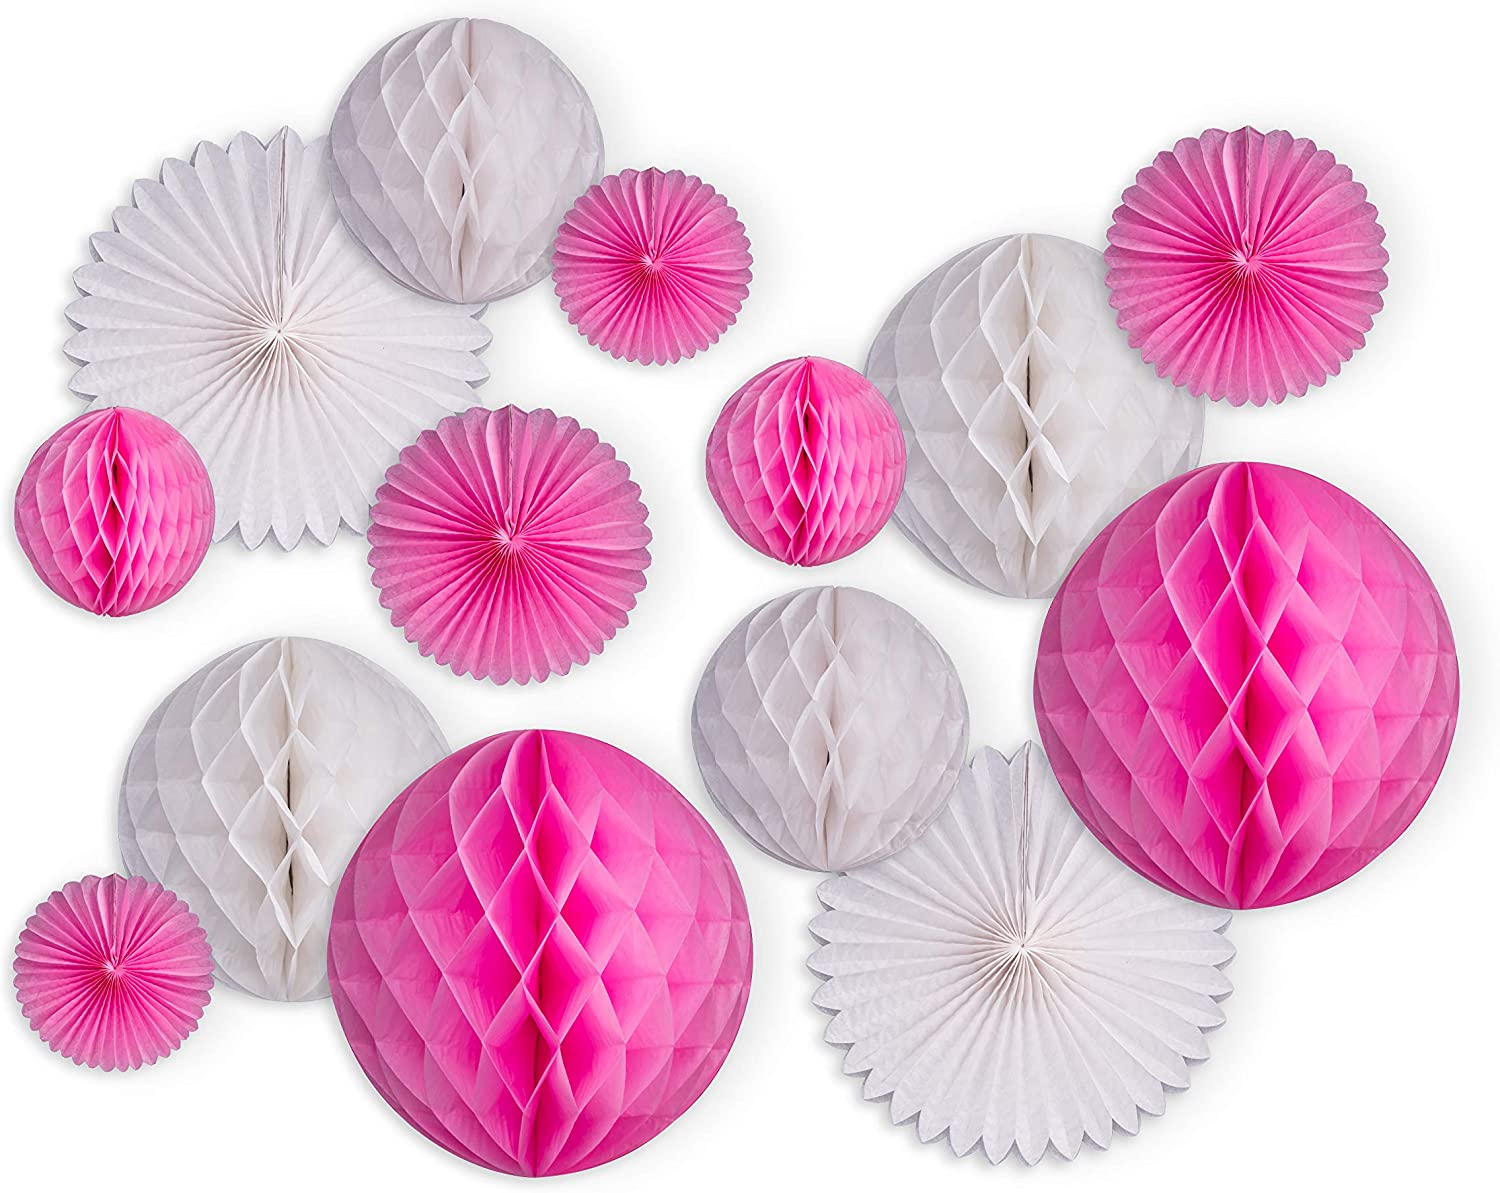 HILWA Wedding Shower Paper Decorations and Pink Party Decorations - Includes Honeycomb Ball, Hanging Paper Fans Party Decorations – Great for Bachelorette Décor, Birthday Party and More